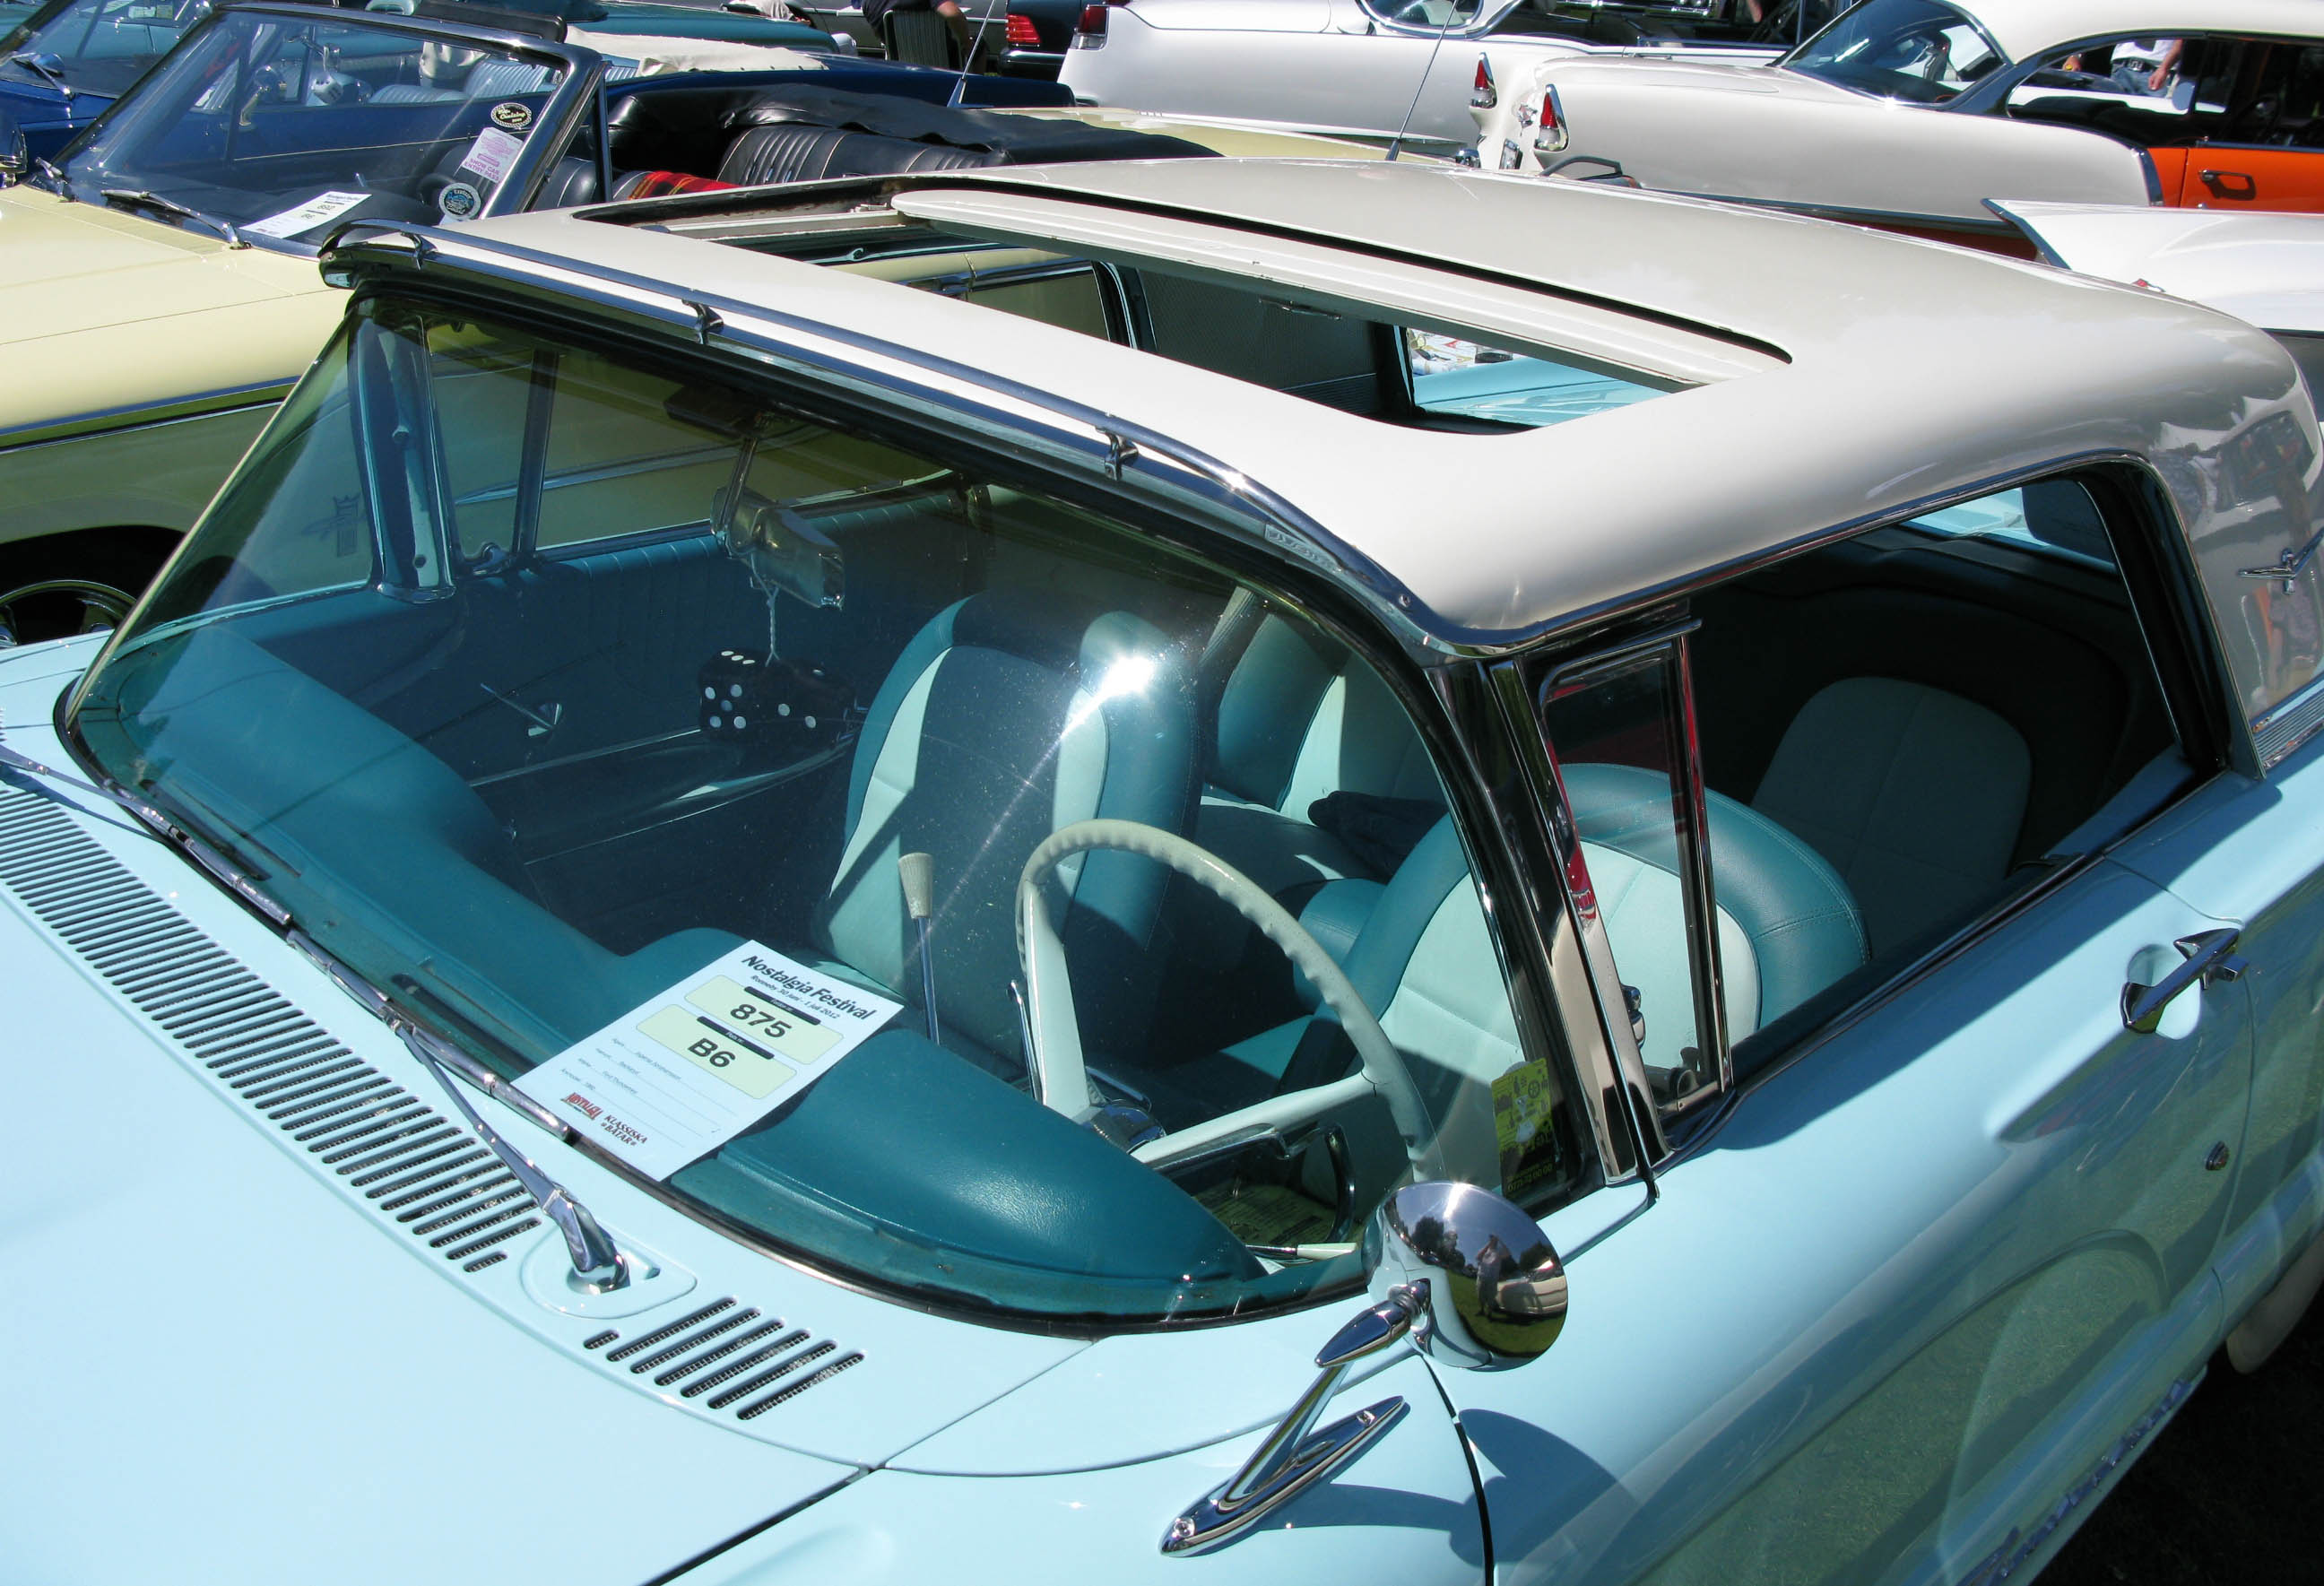 Cars With Sunroof For Sale In Gauteng